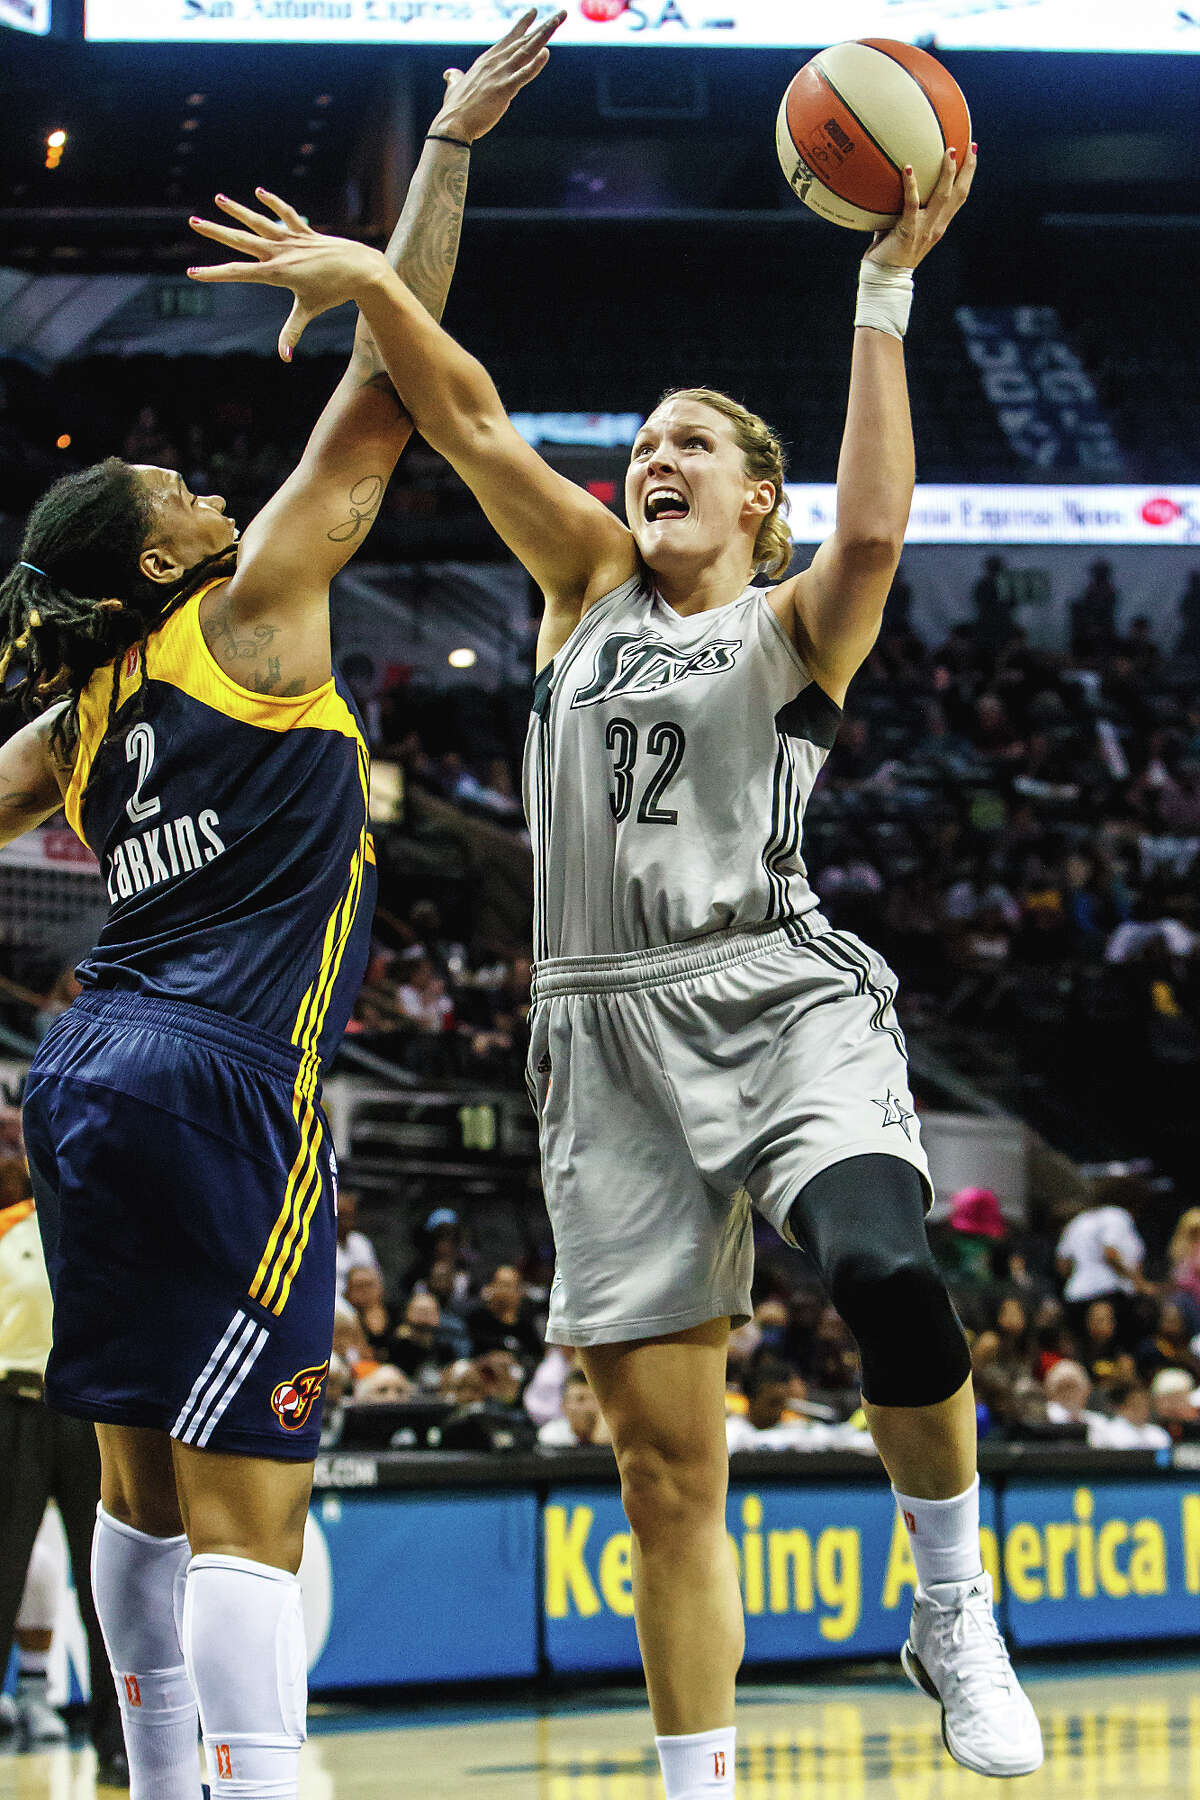 Jayne Appel (right) goes to the basket around Indiana's Erlana Larkins during the second half of the San Antonio Silver Stars 2013 season opener against the defending WNBA champions at the AT&T Center on Friday, May 24, 2013. The Fever won the game 79-64.